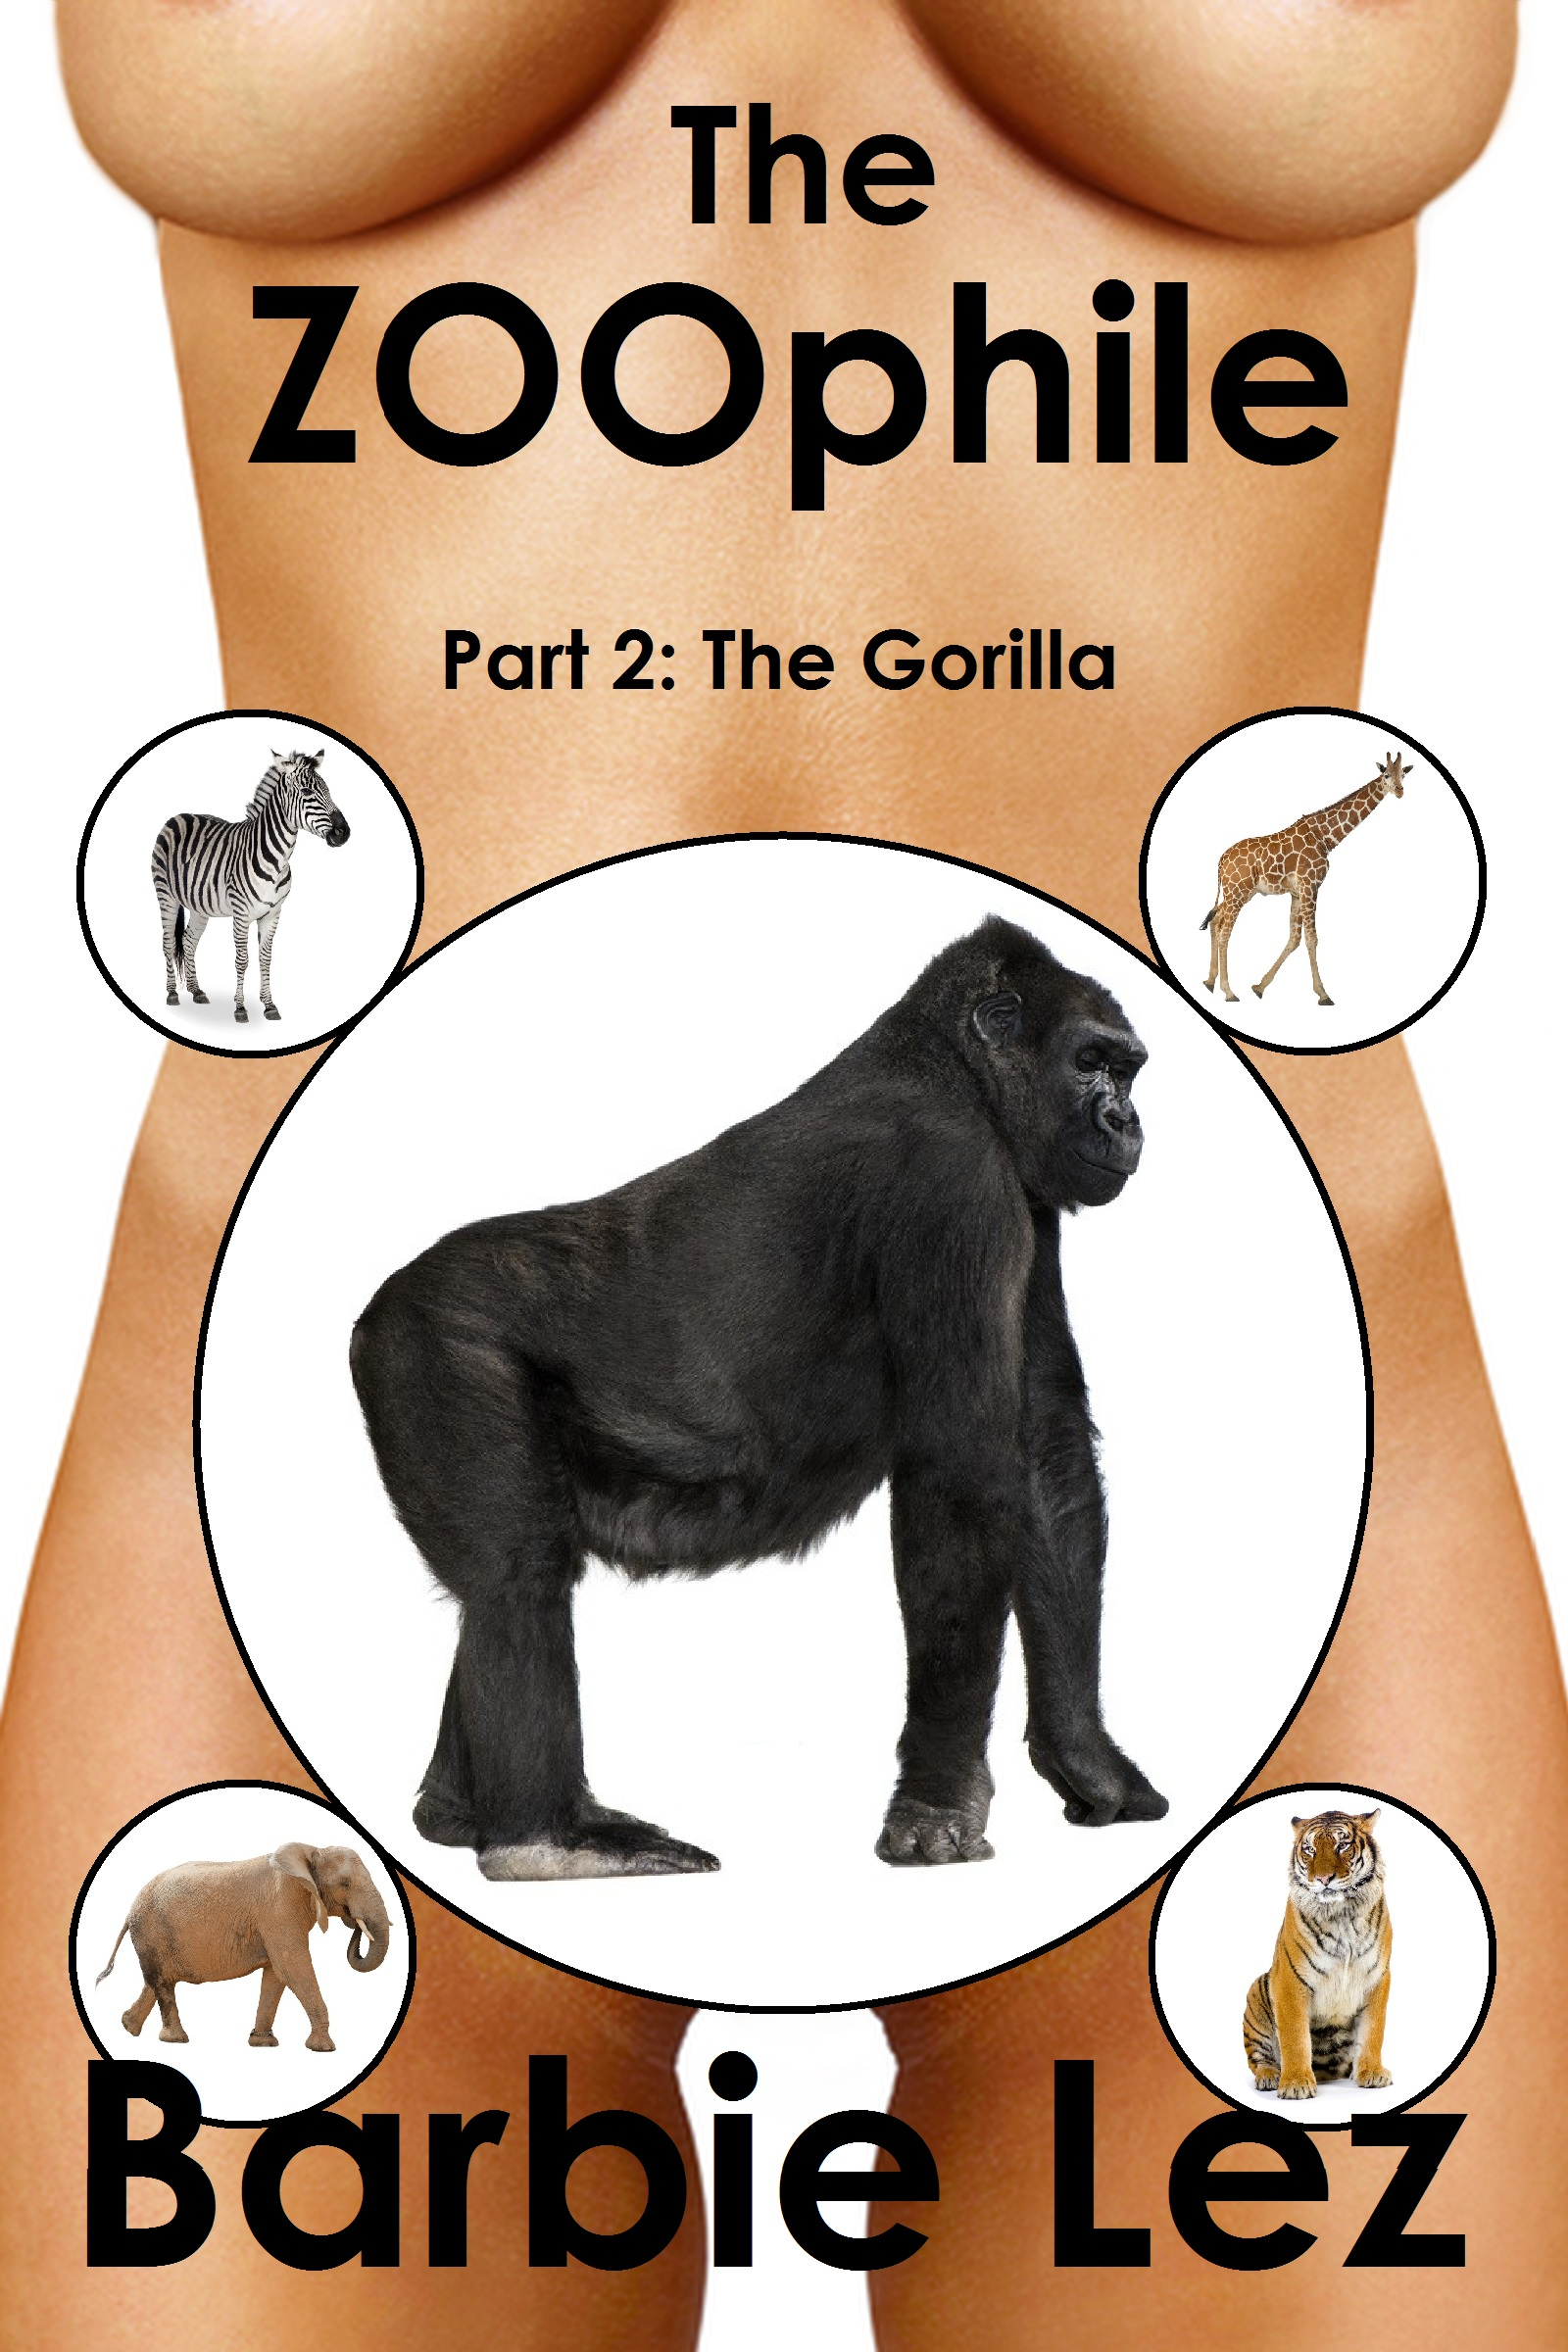 gorilla links porn Sort movies  by Most Relevant and catch the best Gorilla Links Porn movies now!.